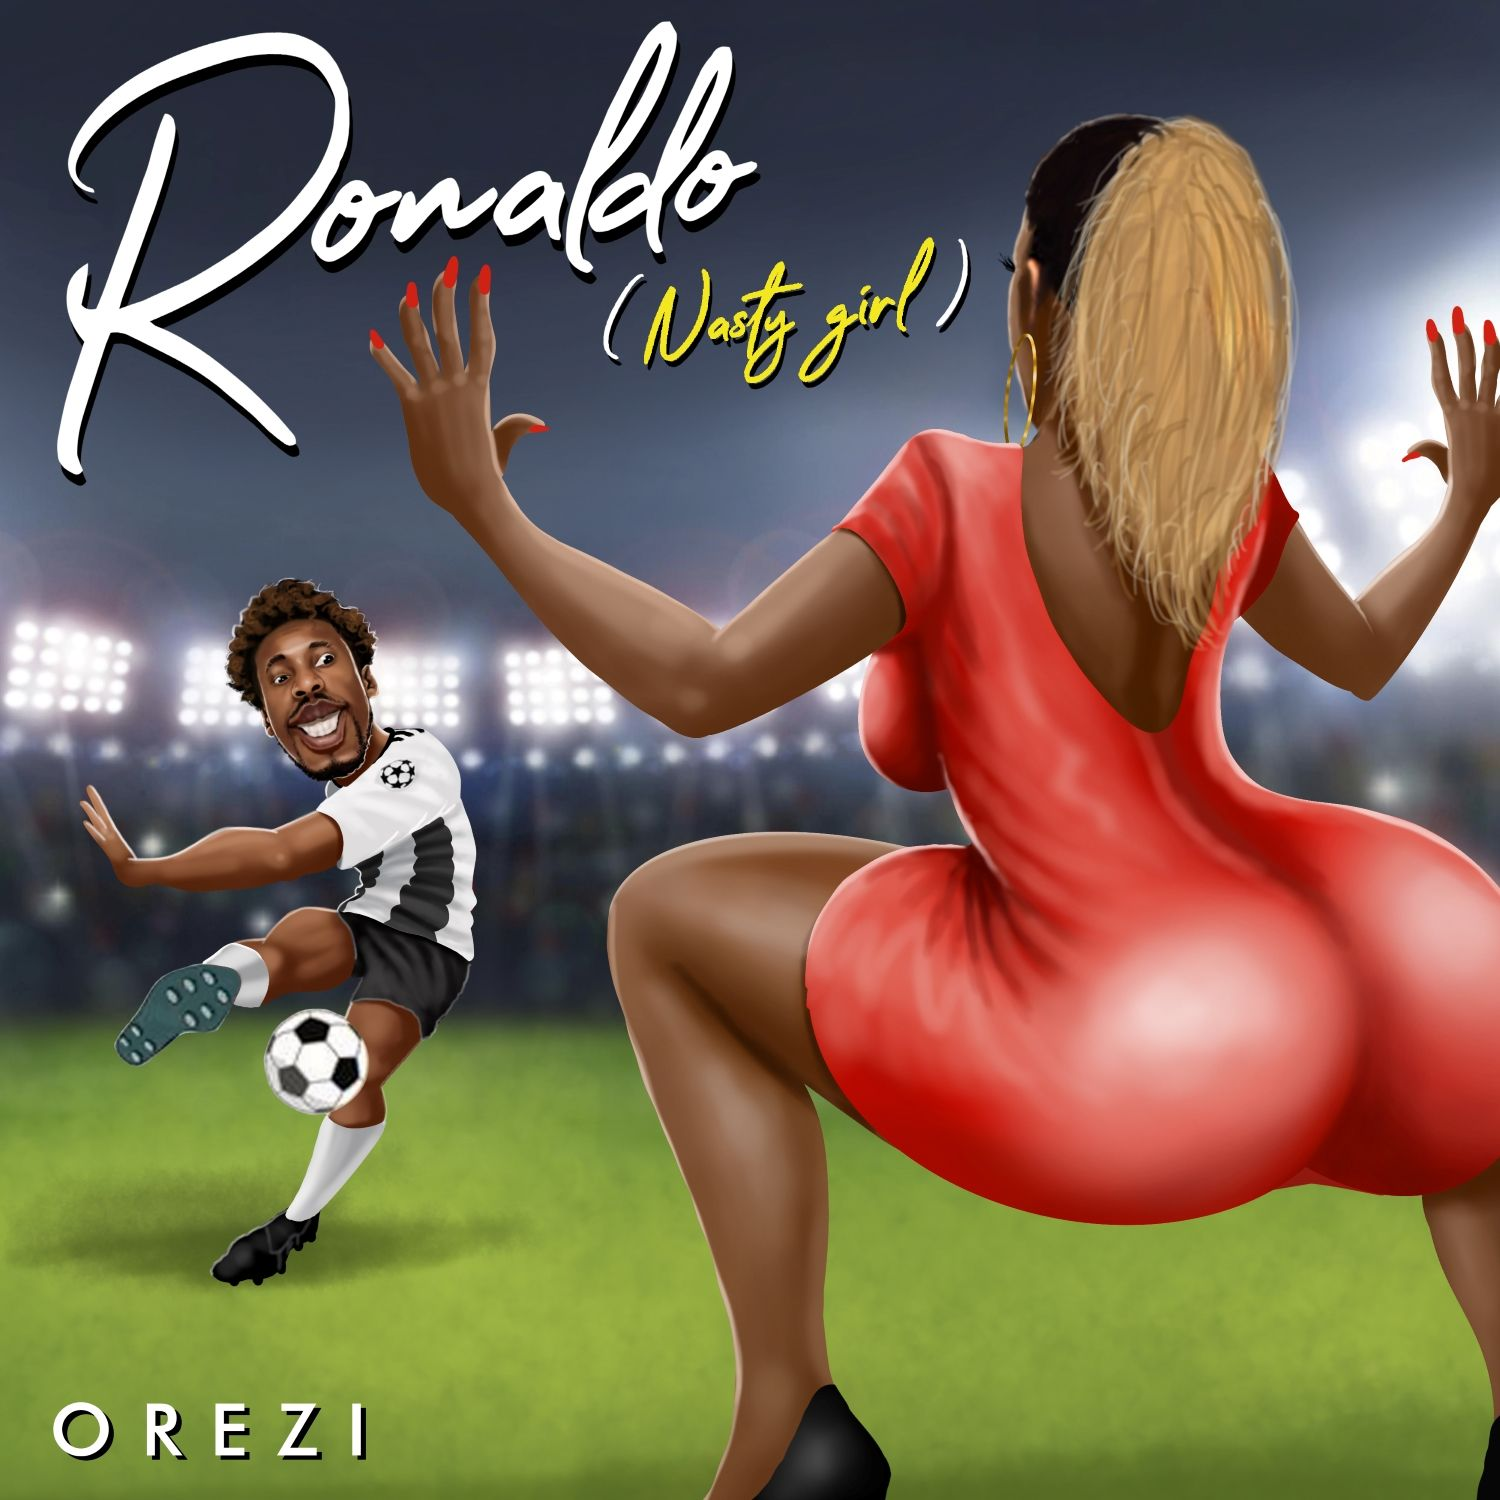 Orezi - Ronaldo (Nasty Girl)